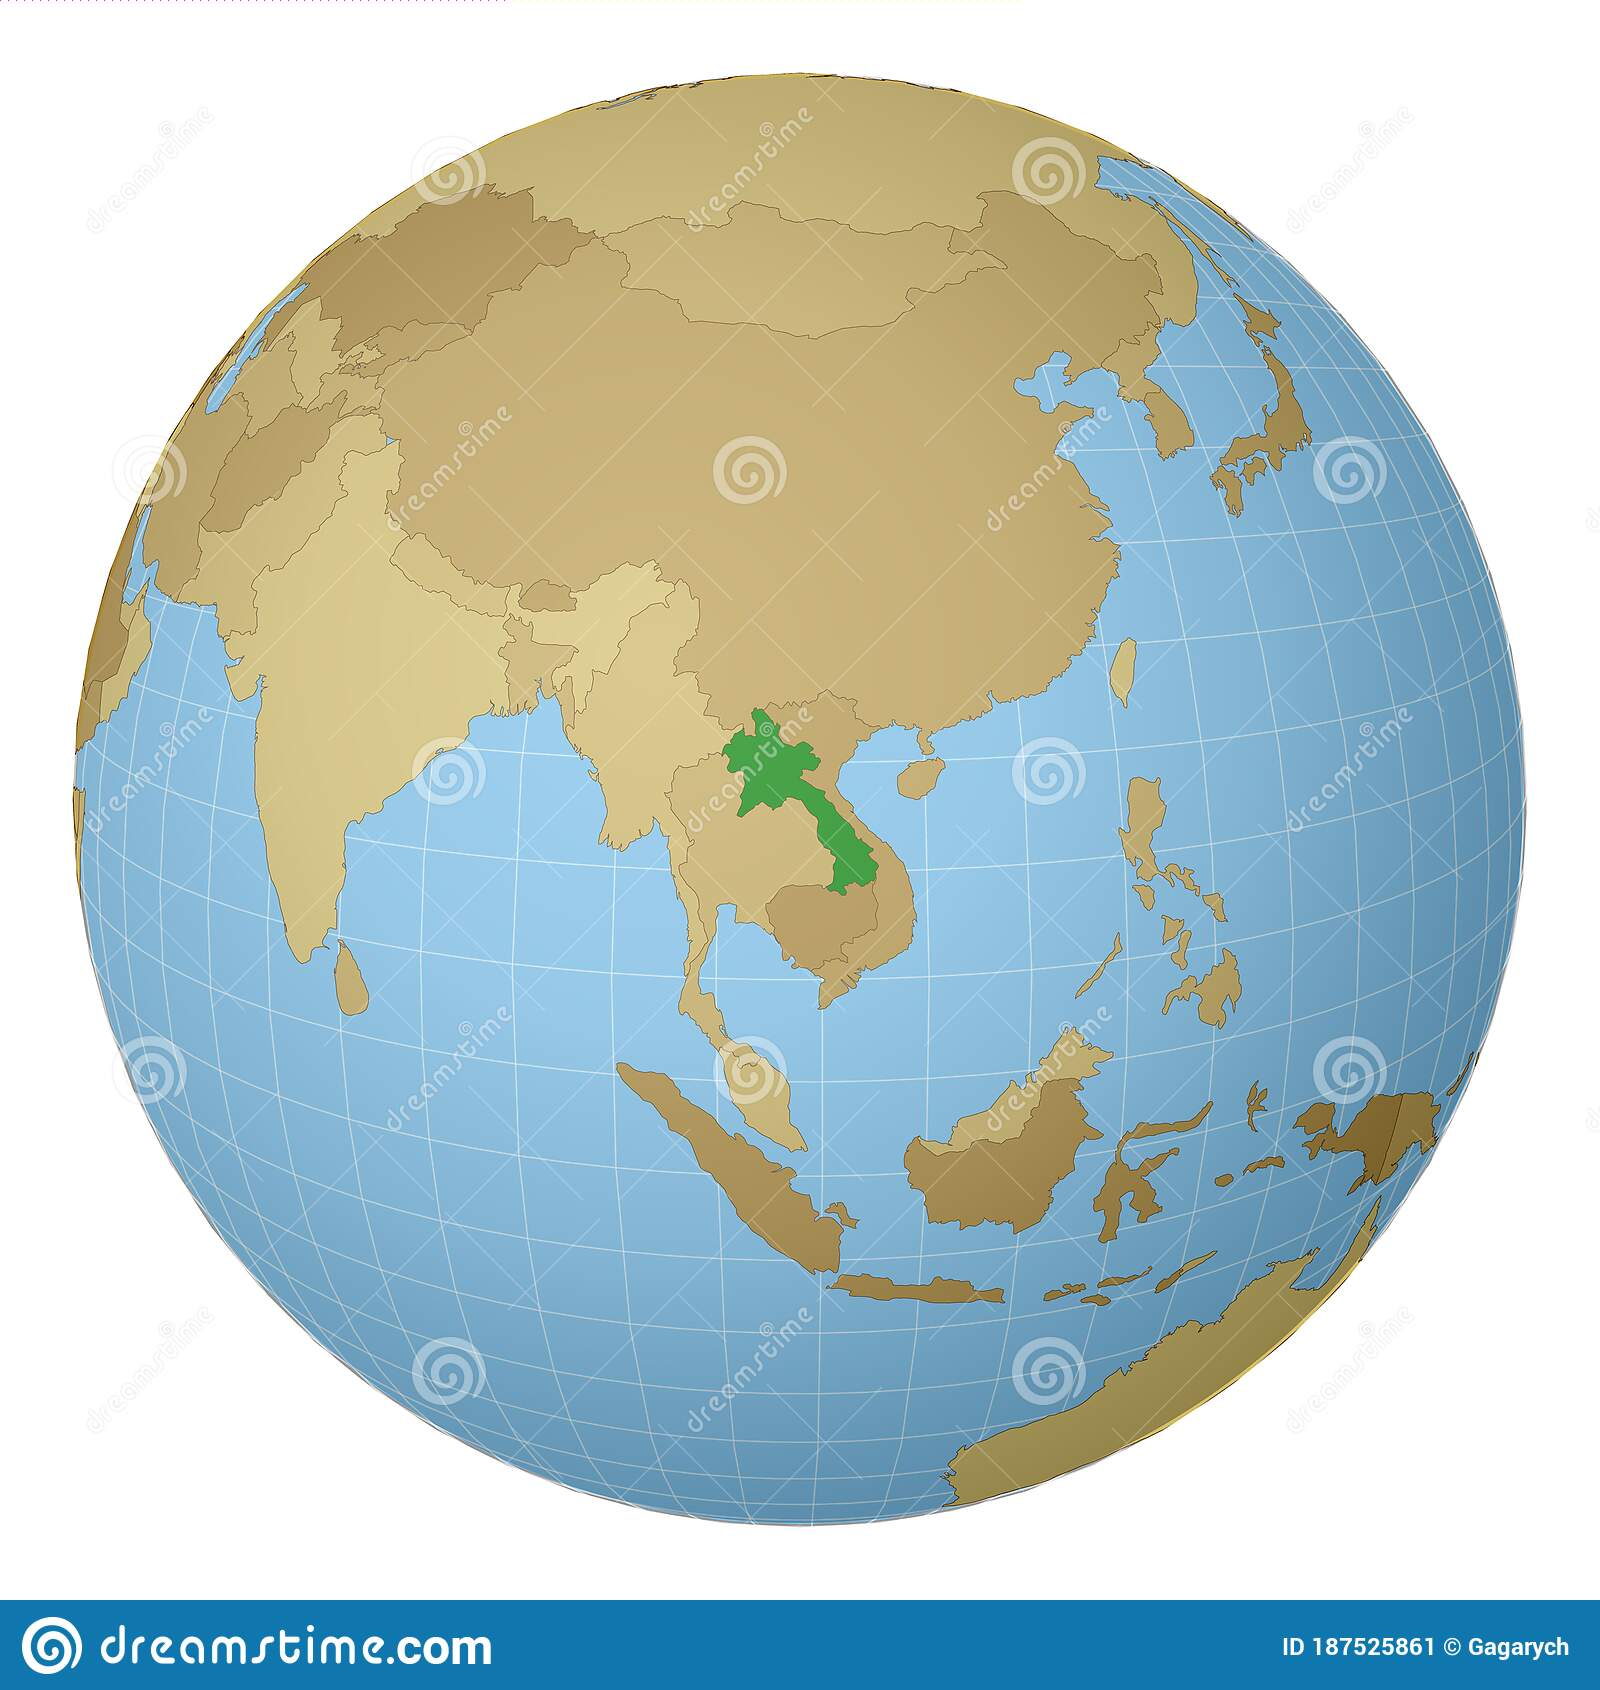 Globe Centered To Laos Country Highlighted With Stock Vector Illustration Of Laotian Cartography 187525861